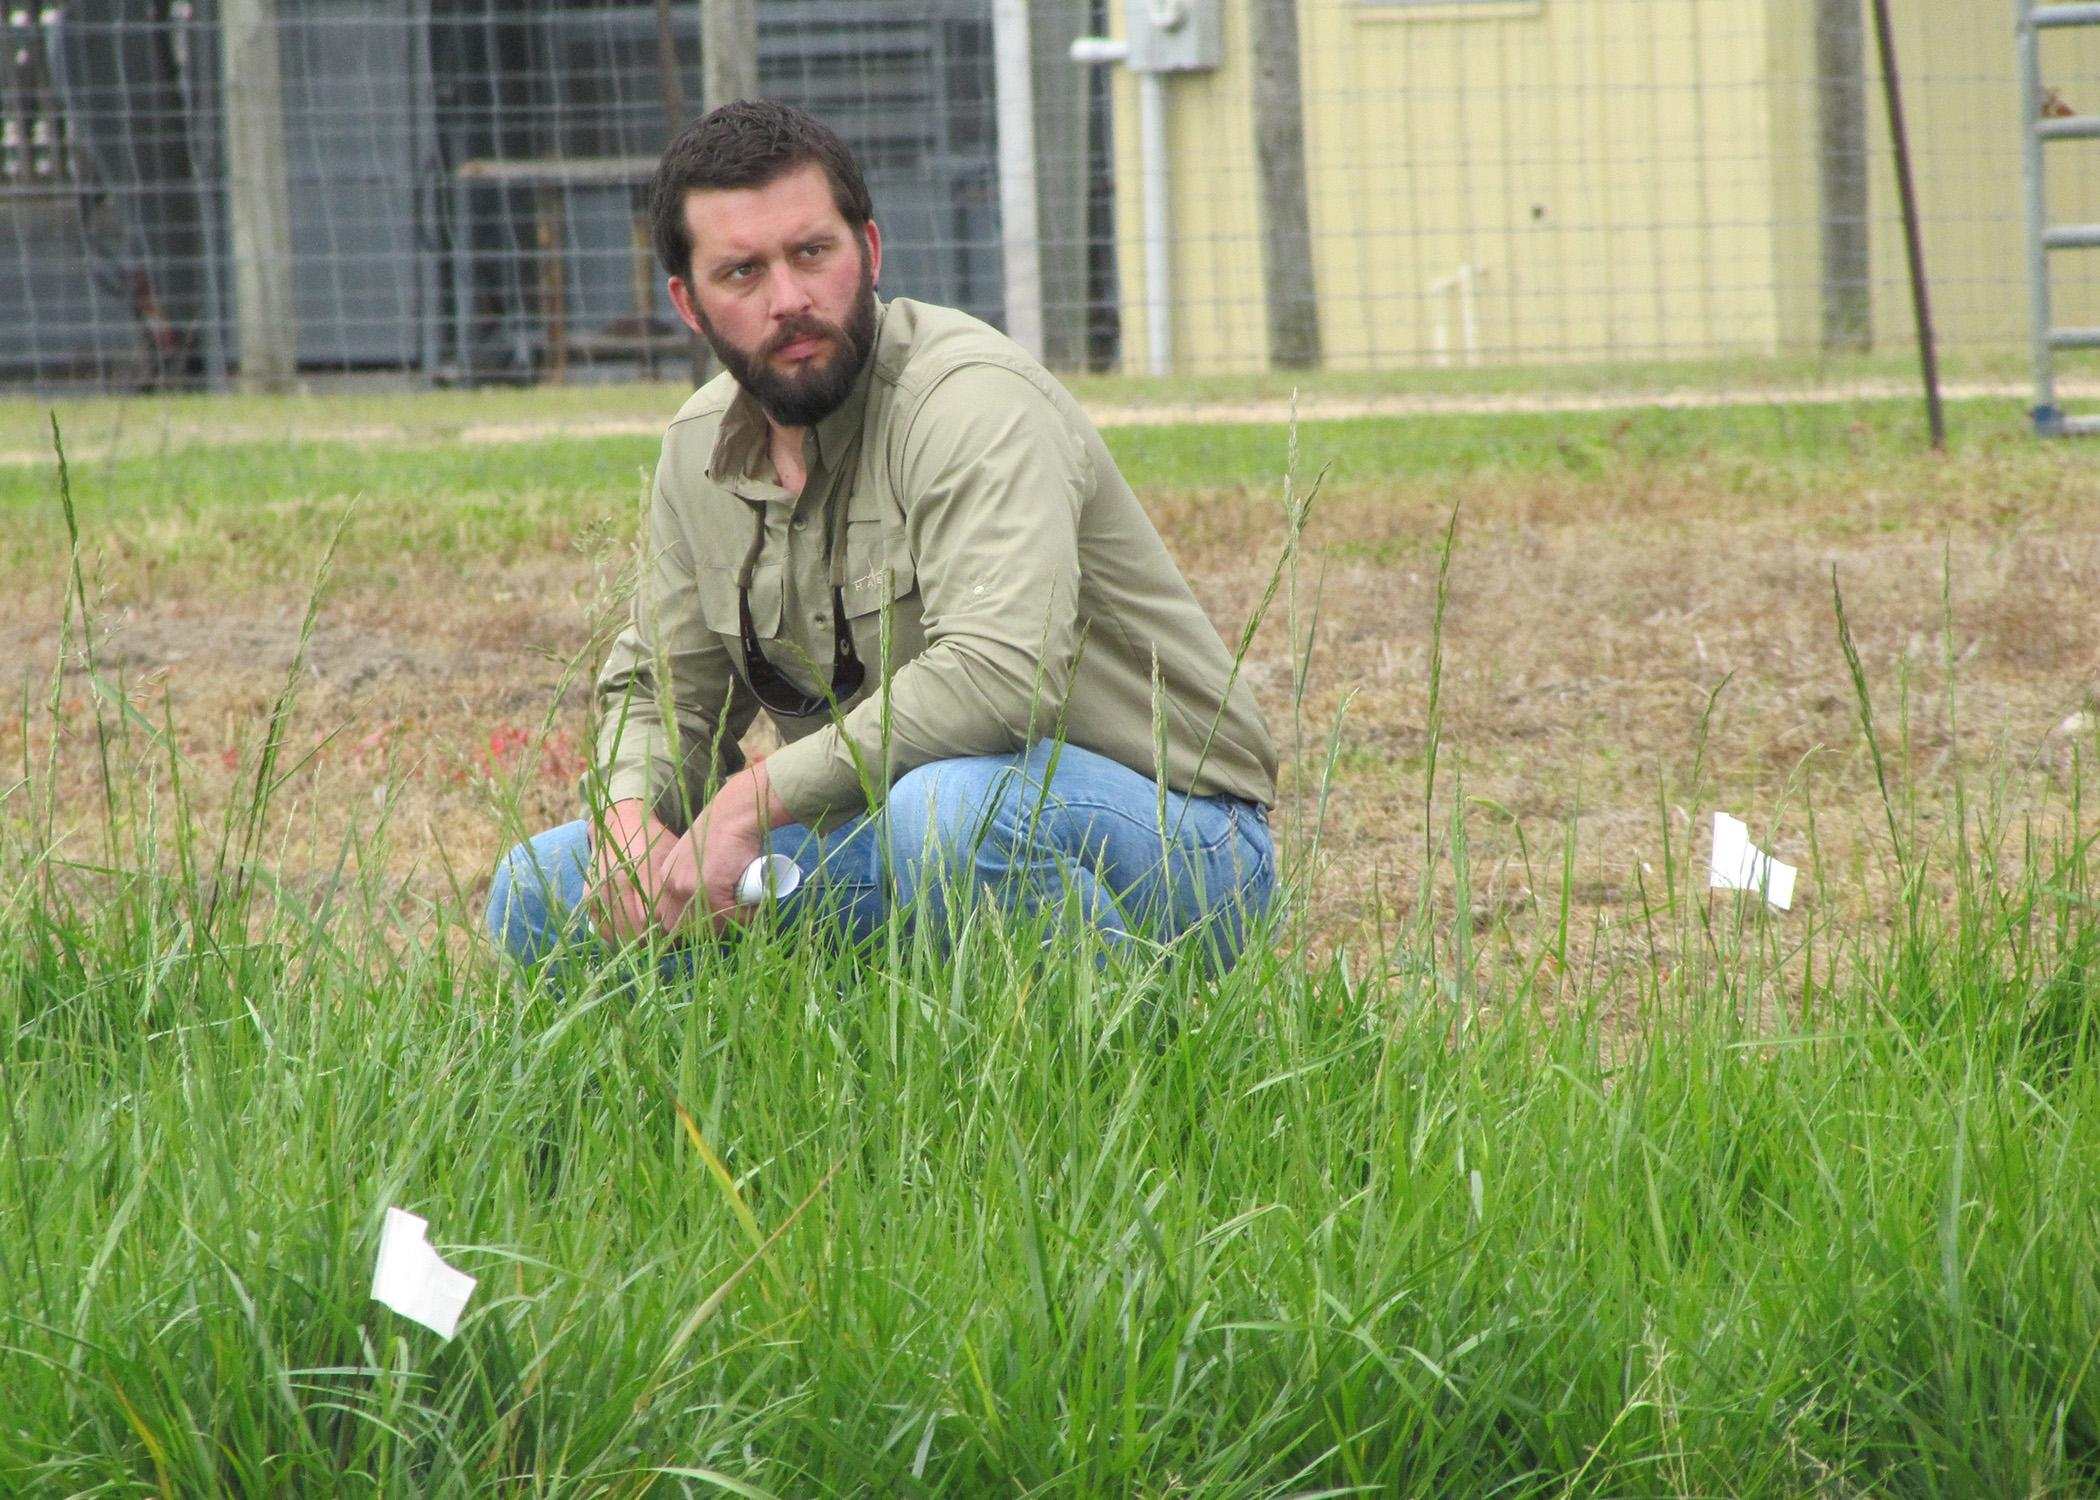 Jesse Morrison, Mississippi State University doctoral student and research associate, looks over a plot of eastern gamagrass. He joined an elite group of graduate students and scientists from around the country taking part in a program to raise awareness and support in Congress for science and research funding. (Submitted photo)